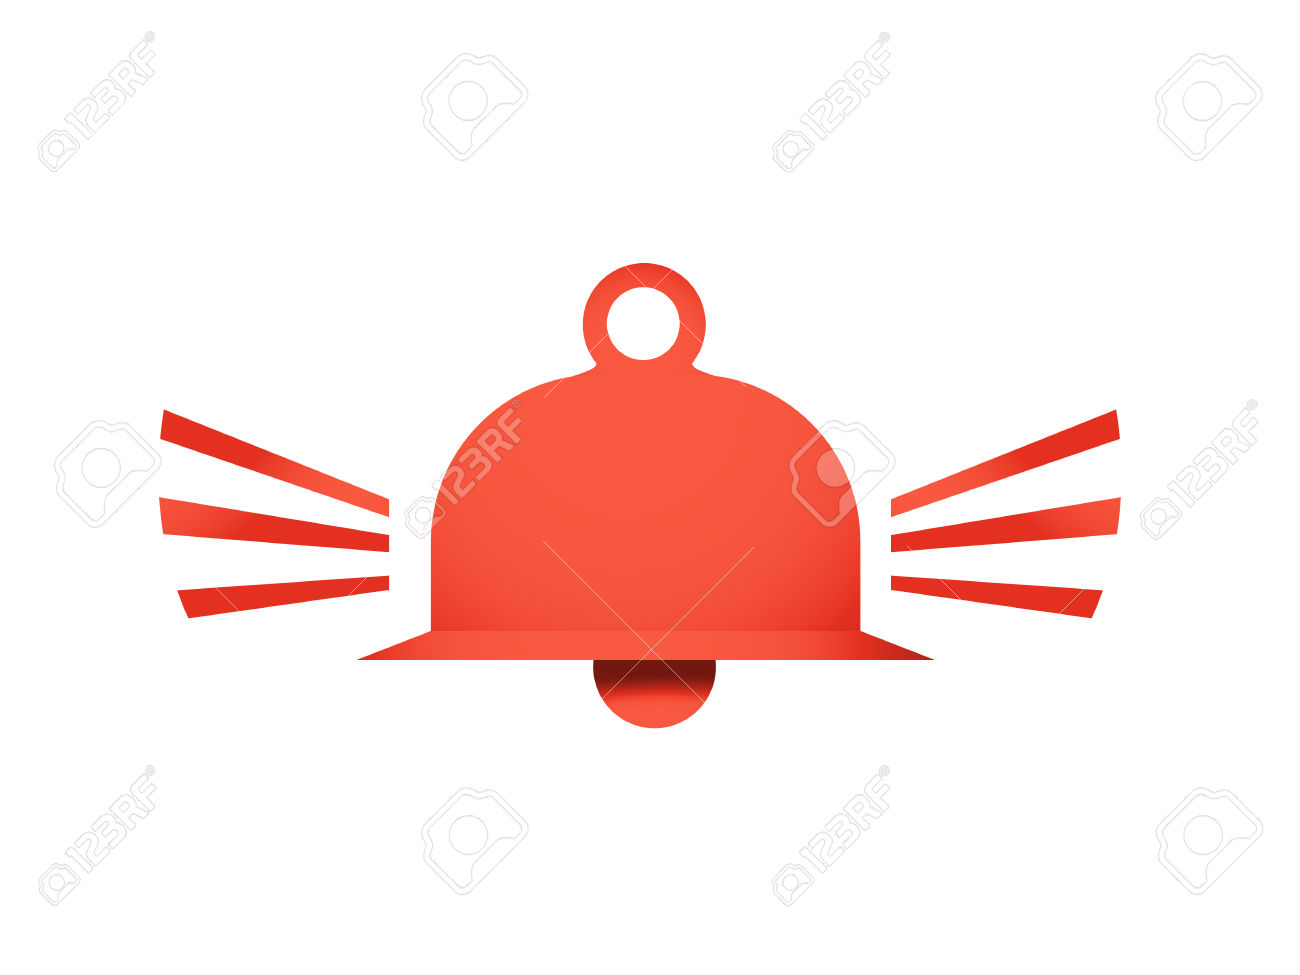 Red Ringing Bell Vector Icon Illustration Symbol Sign Royalty Free.